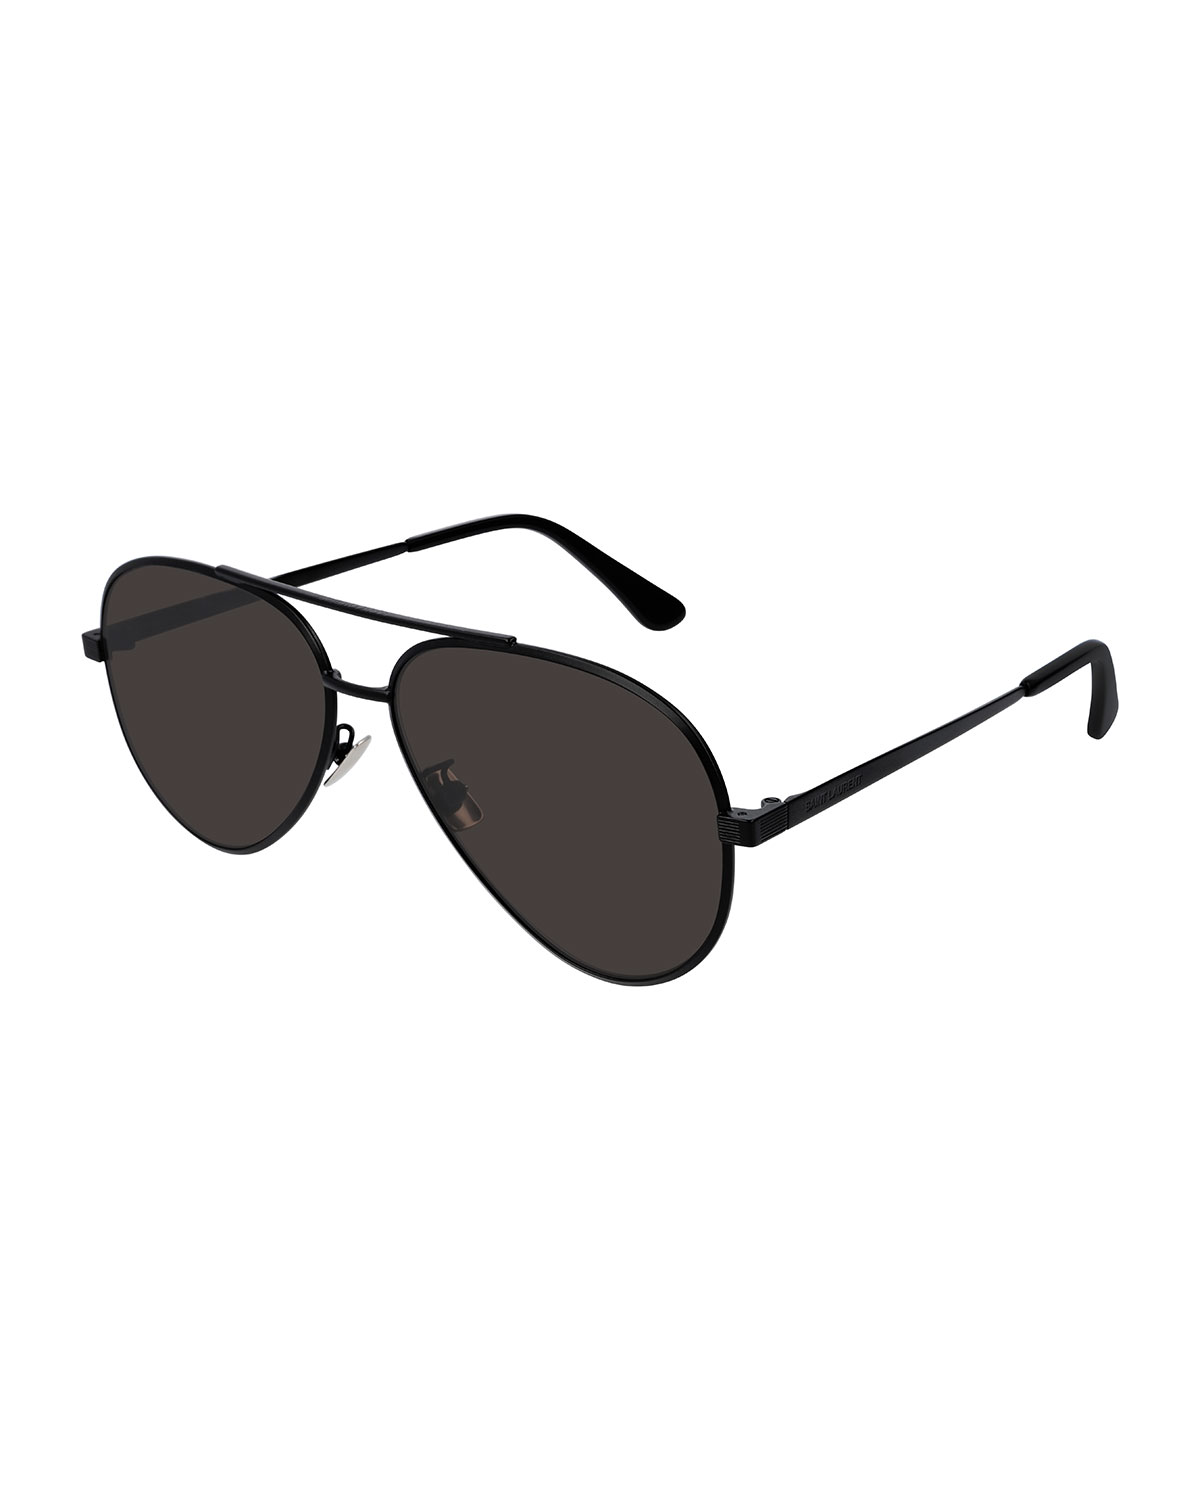 4f3cf23f2a8ca Saint Laurent Men s Classic Metal Aviator Sunglasses